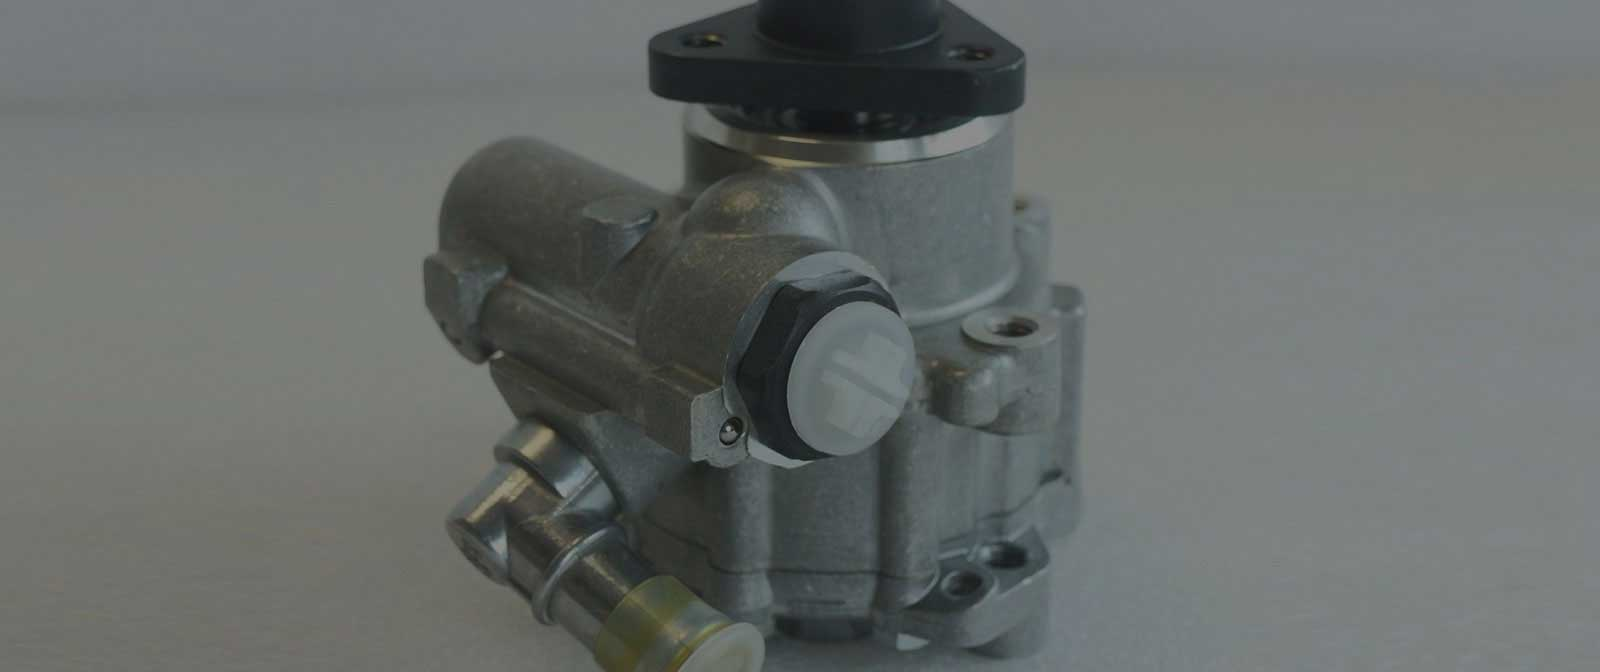 Audi power steering pump for sale